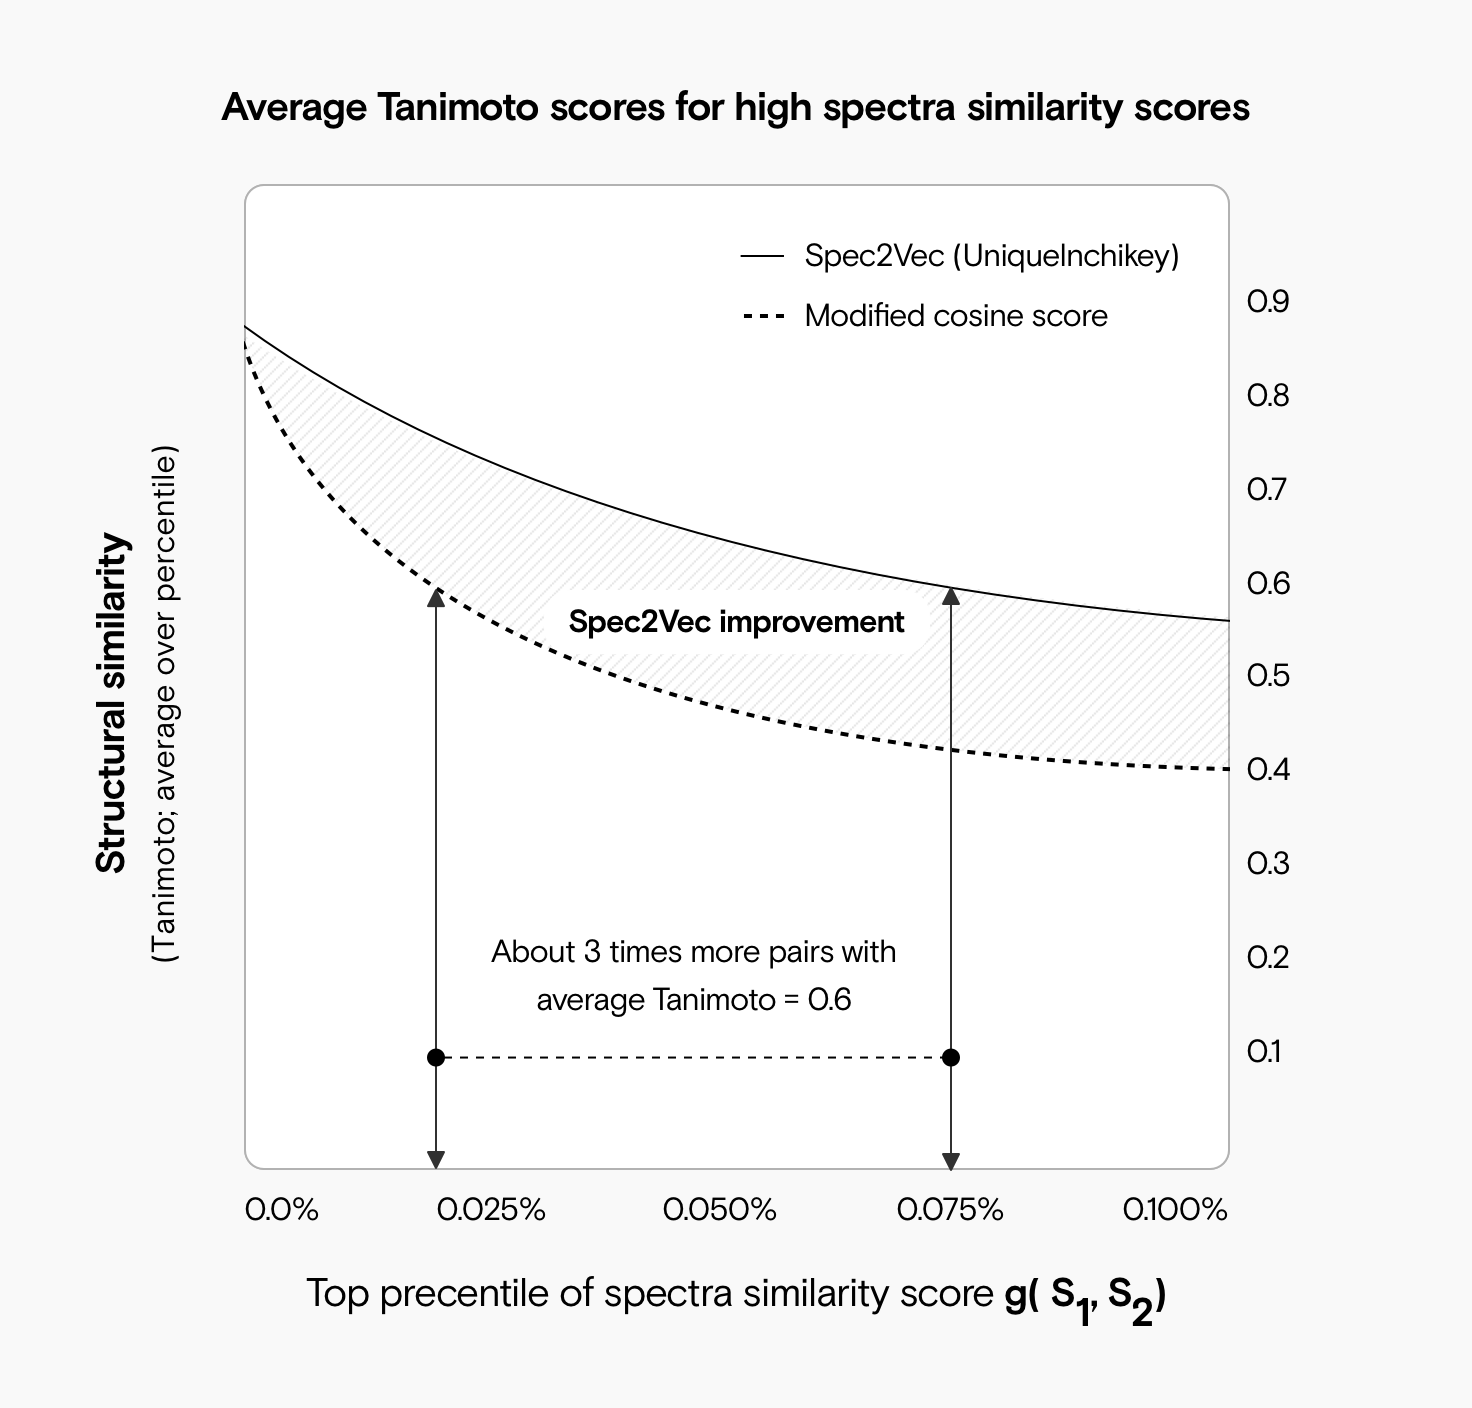 Chart showing how the average Tanimoto score is considerably higher for the highly scored Spec2Vec spectral pairs compared to hughes Cosine similarity pairs.